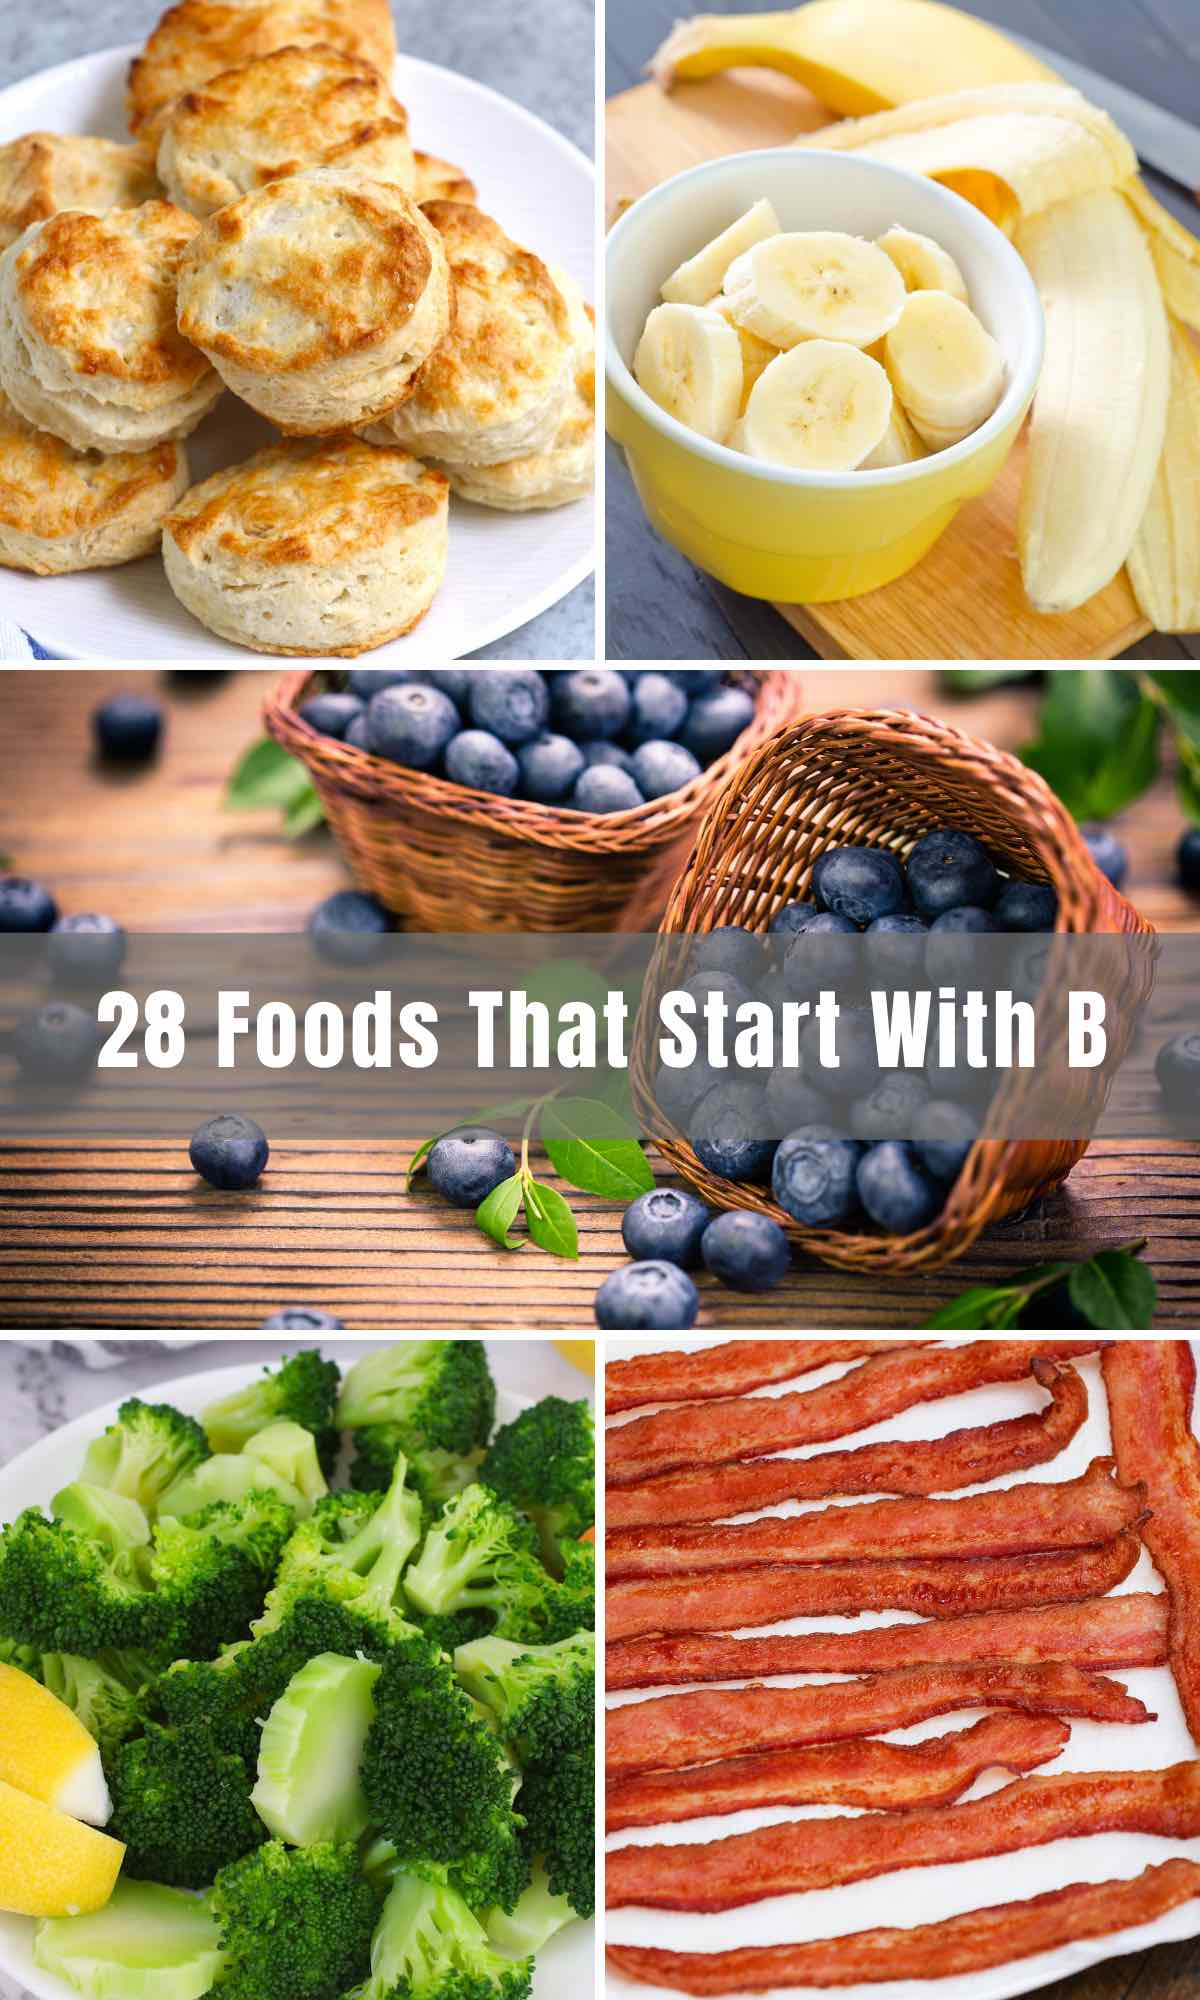 "Let your mind wander. Think of all the veggies, fruits, snacks, desserts, dishes that start with ""B"". Hungry yet? Hopefully the list below stirs and satisfies some cravings, and brings you into the world of foods that start with the letter ""B."""